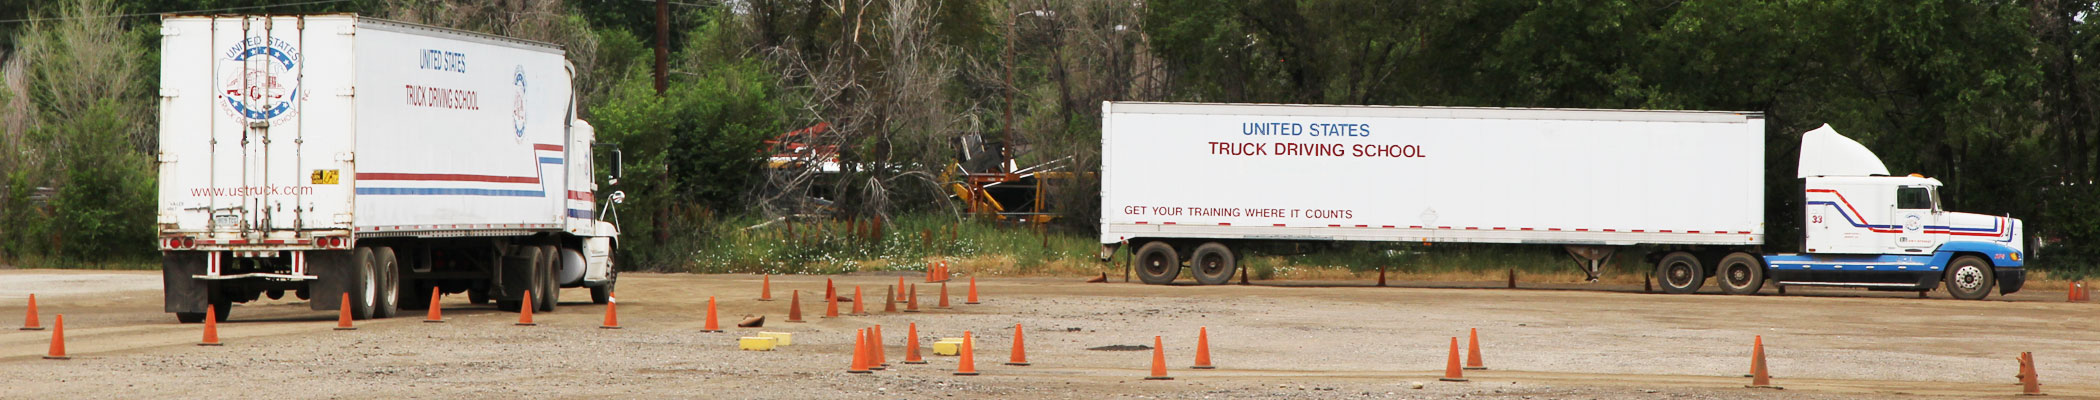 Cdl Training Programs At United States Truck Driving School